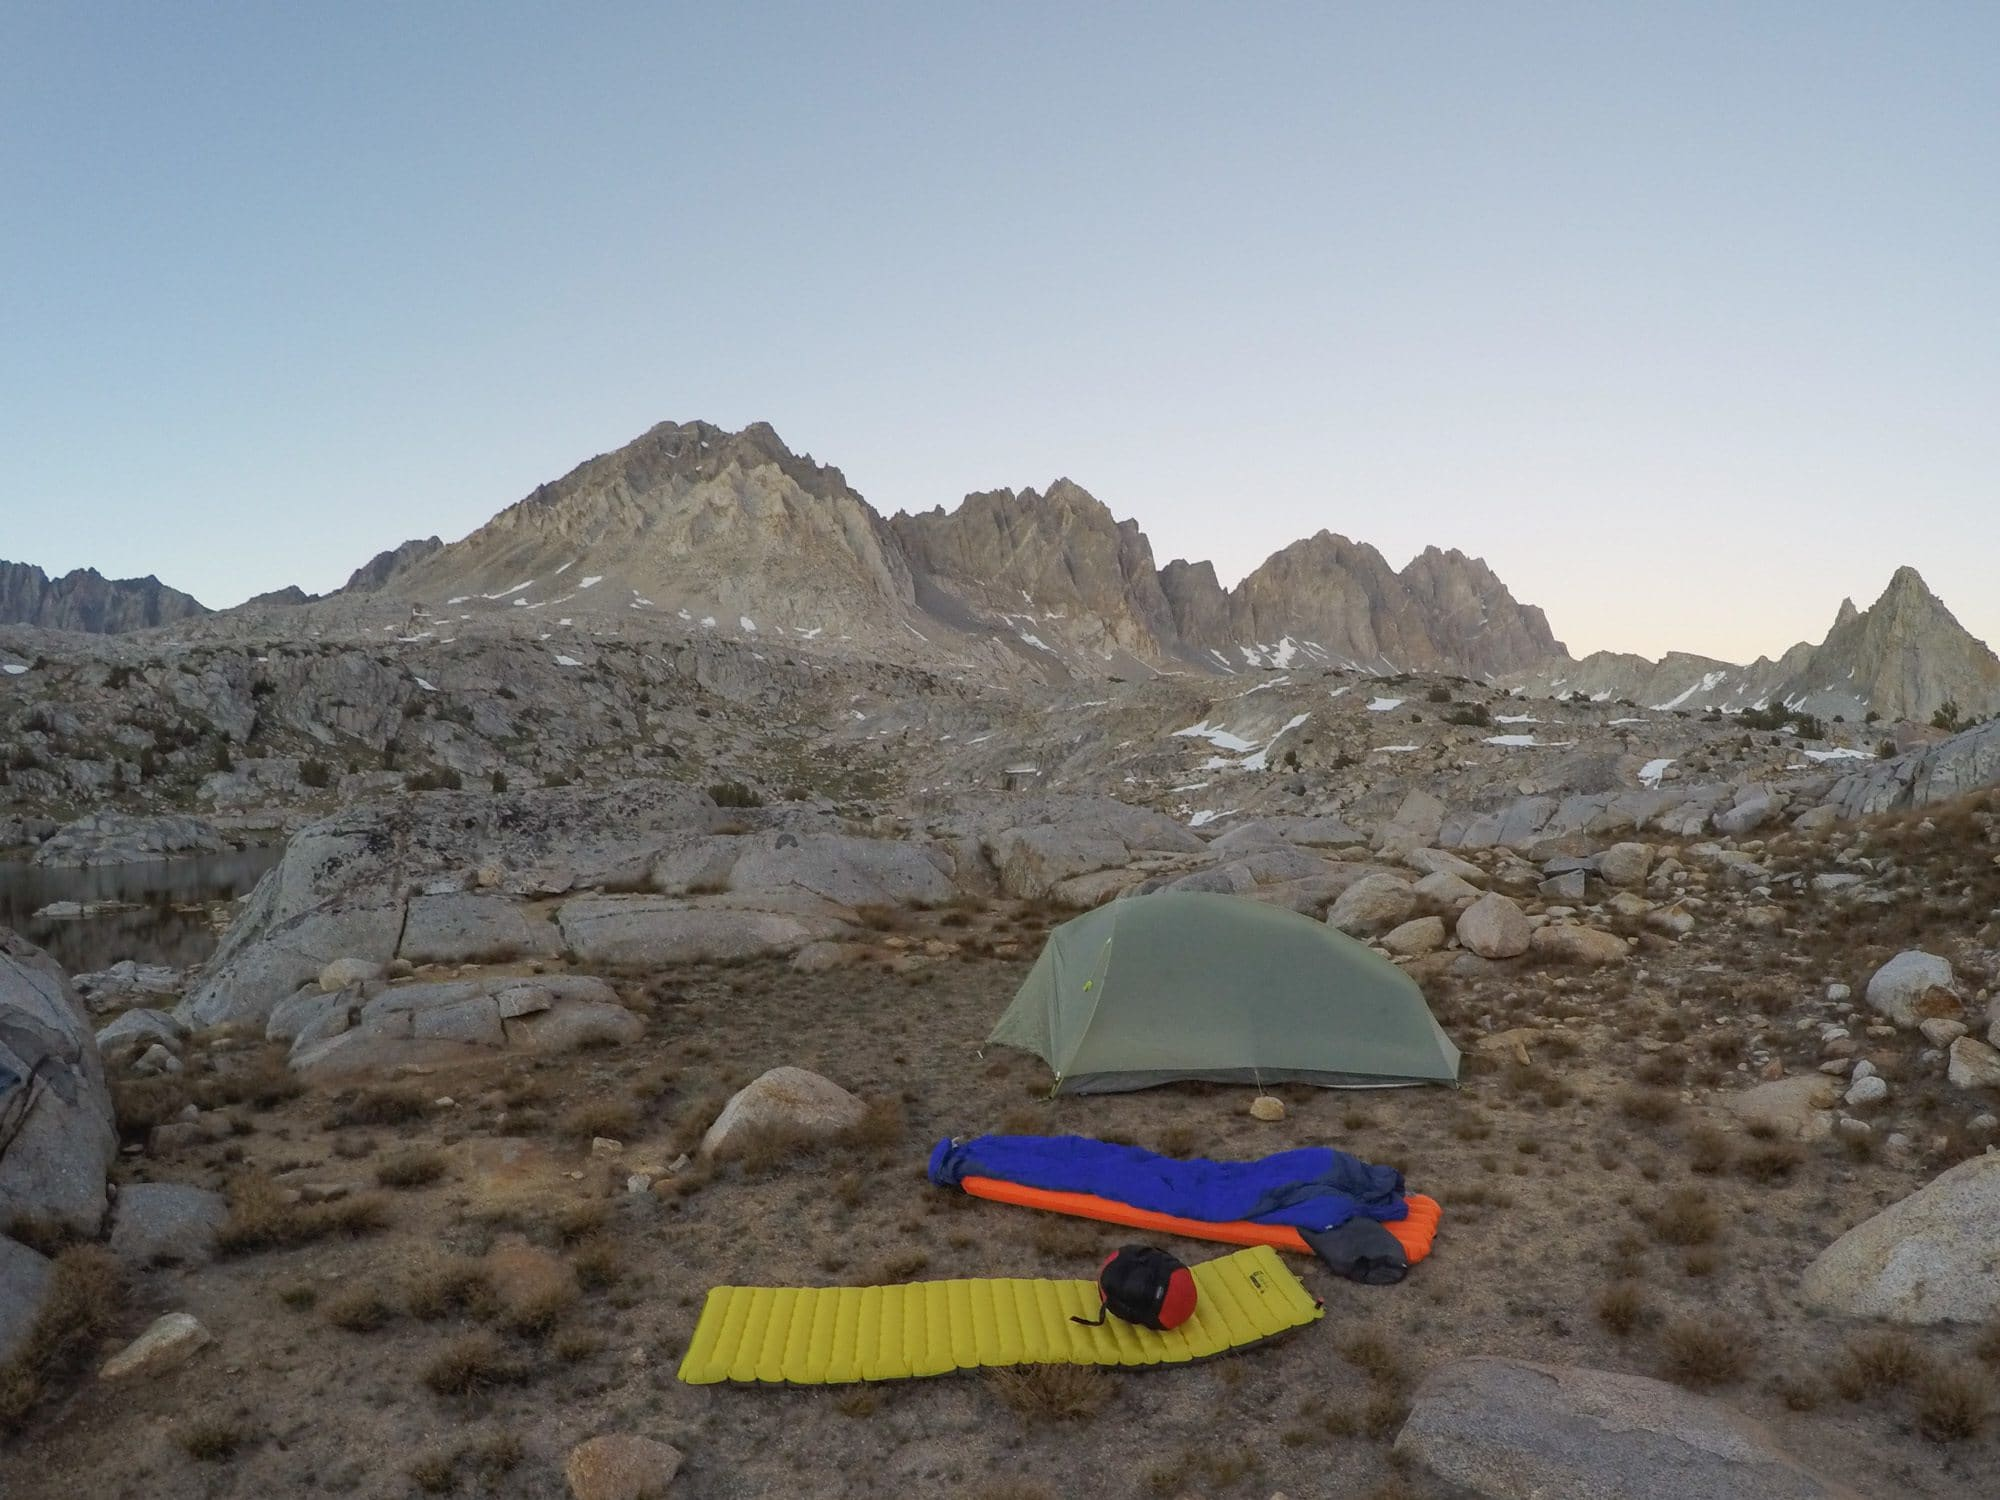 Read our list of the best sleeping pads for backpacking in 2021 that are lightweight, warm and durable enough to stand up to a multi-day trek.